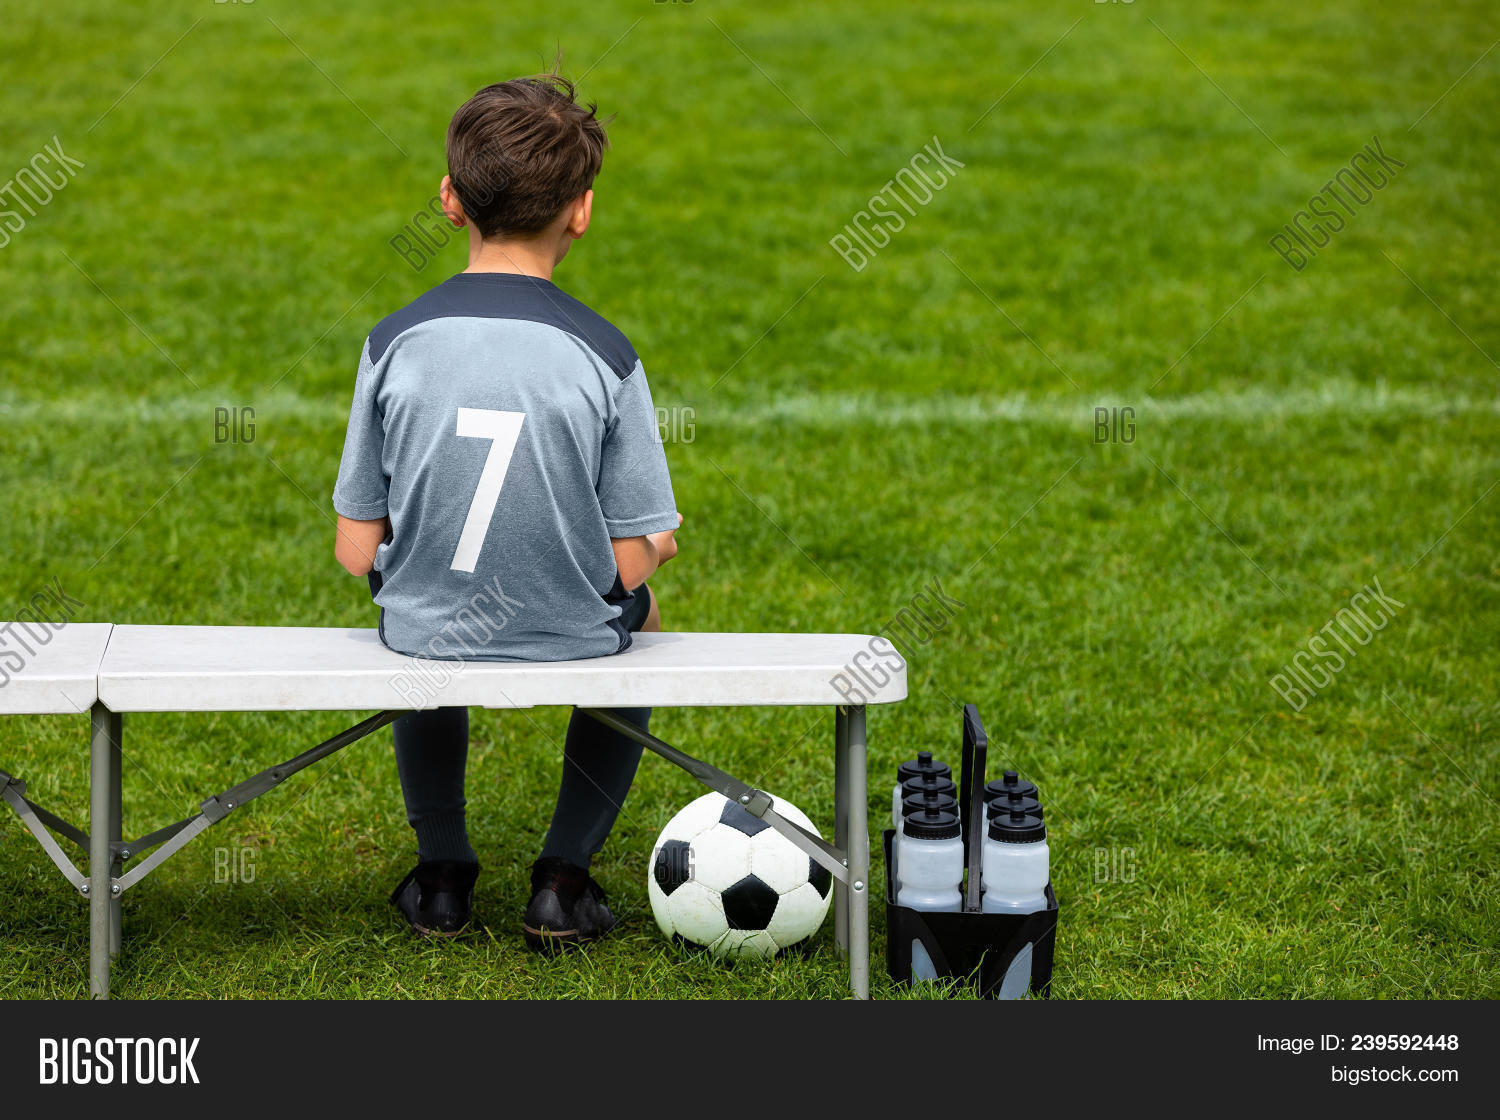 Little Footballer Image & Photo (Free Trial) | Bigstock